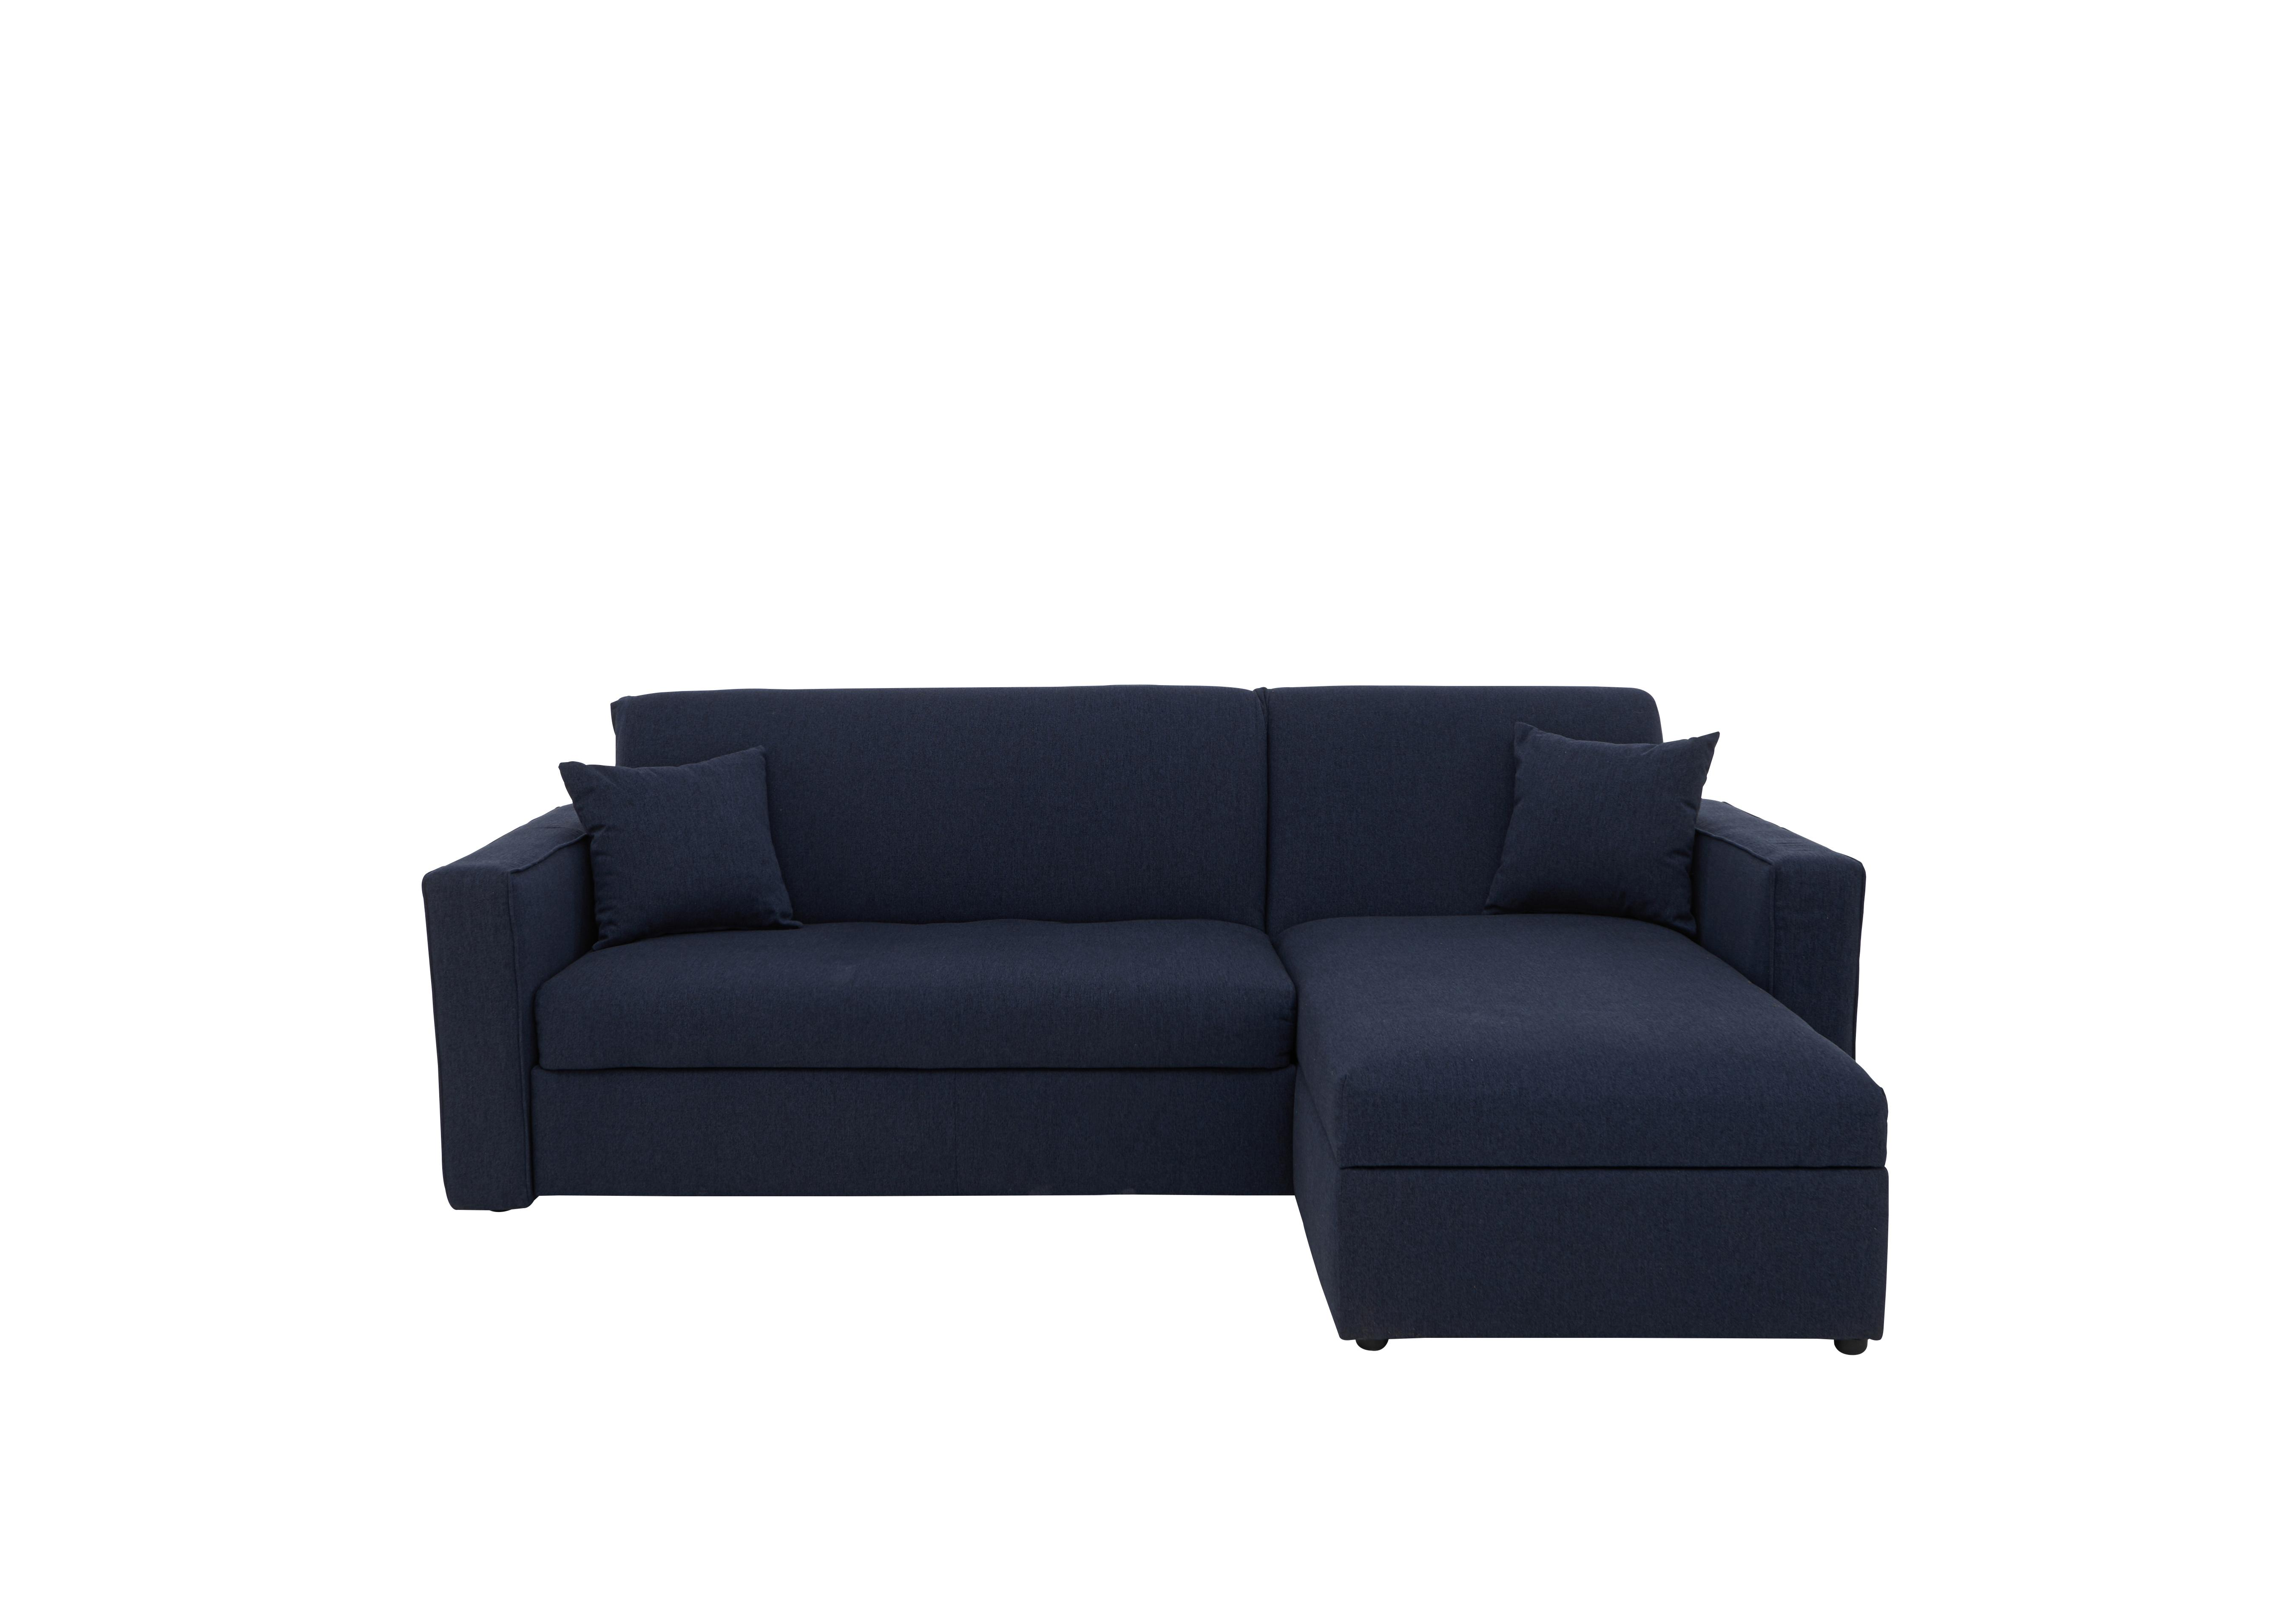 Versatile Small 2 Seater Fabric Chaise Sofa Bed With Box Arms Furniture Village